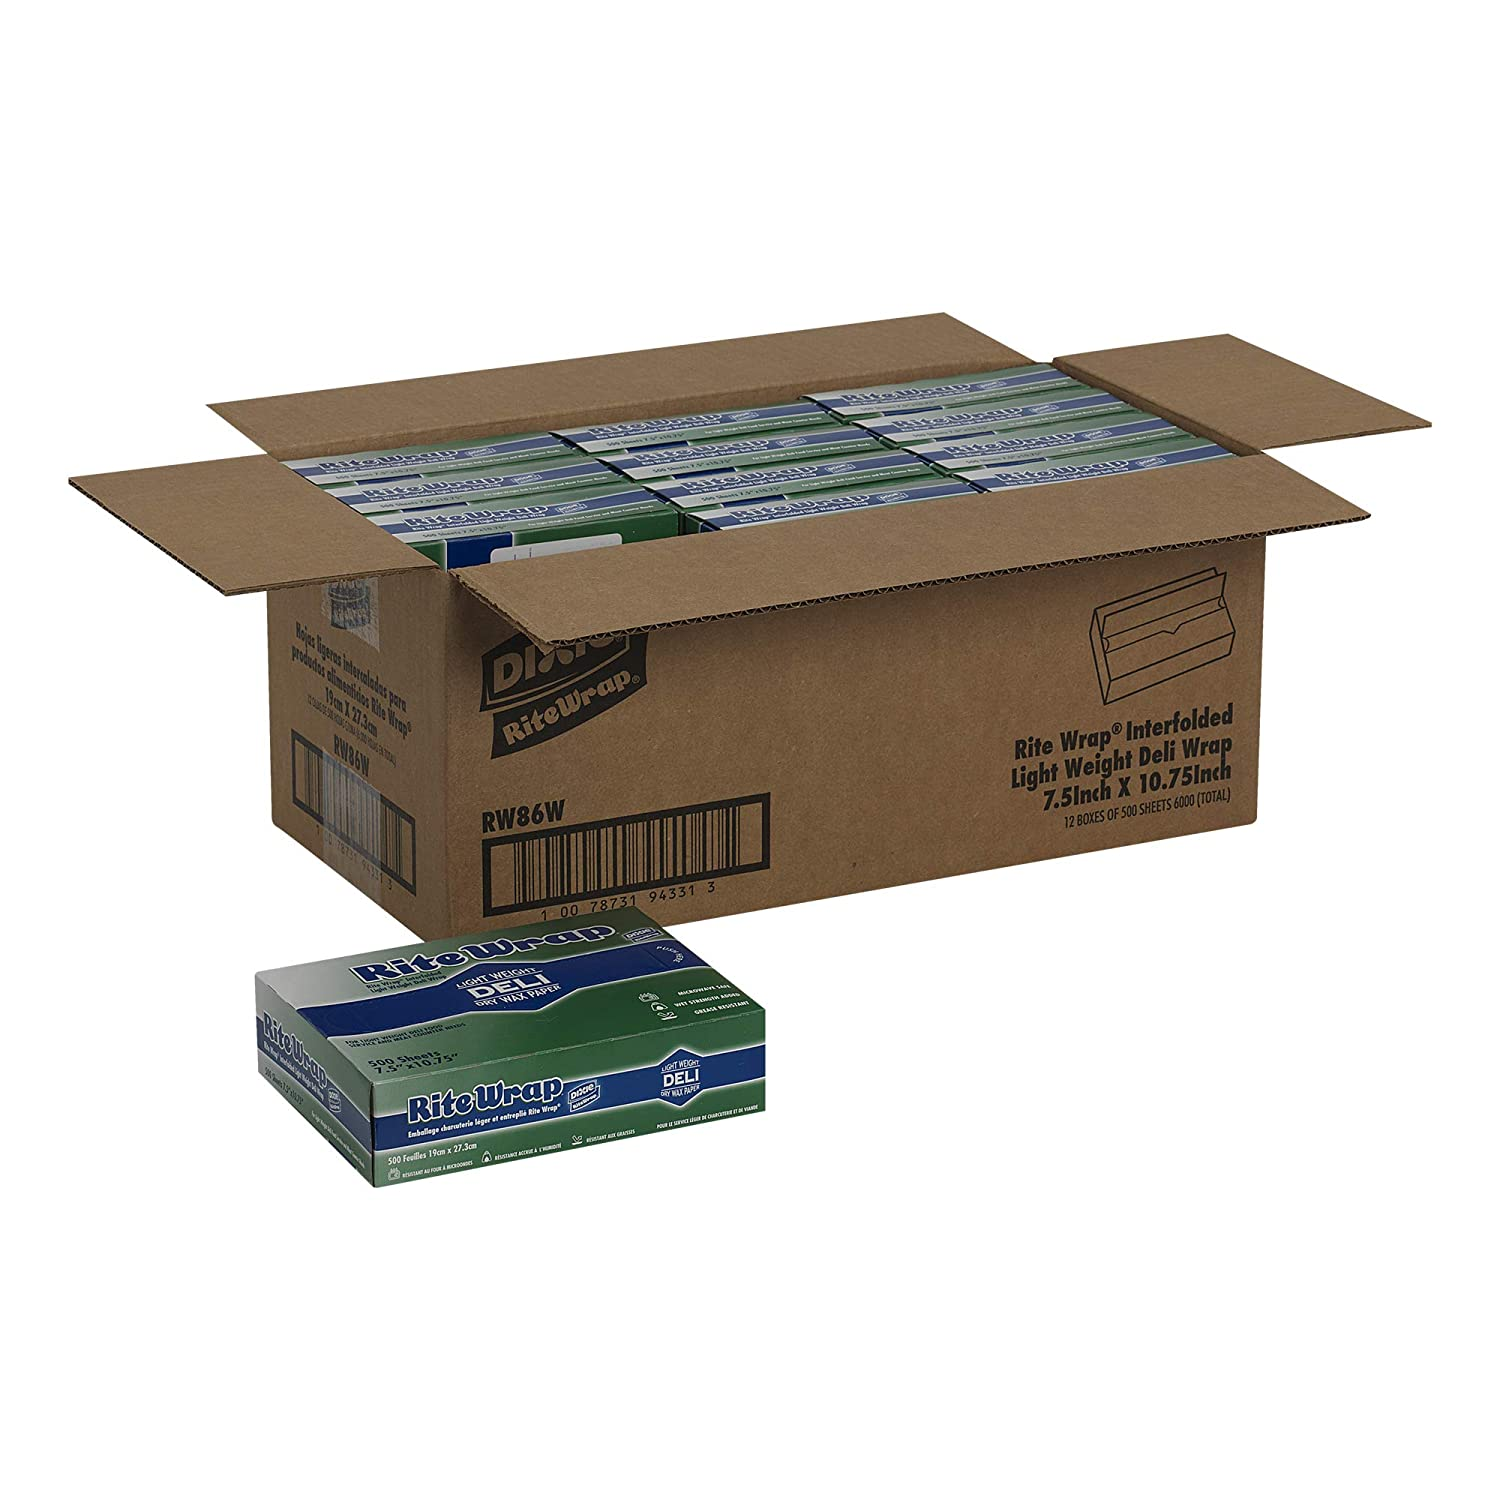 10 W x 10.75 L Rite-Wrap Light-Weight Interfolded Dry Wax Deli Paper by GP PRO RW106 Georgia-Pacific White Case of 12 Boxes, 500 Sheets Per Box